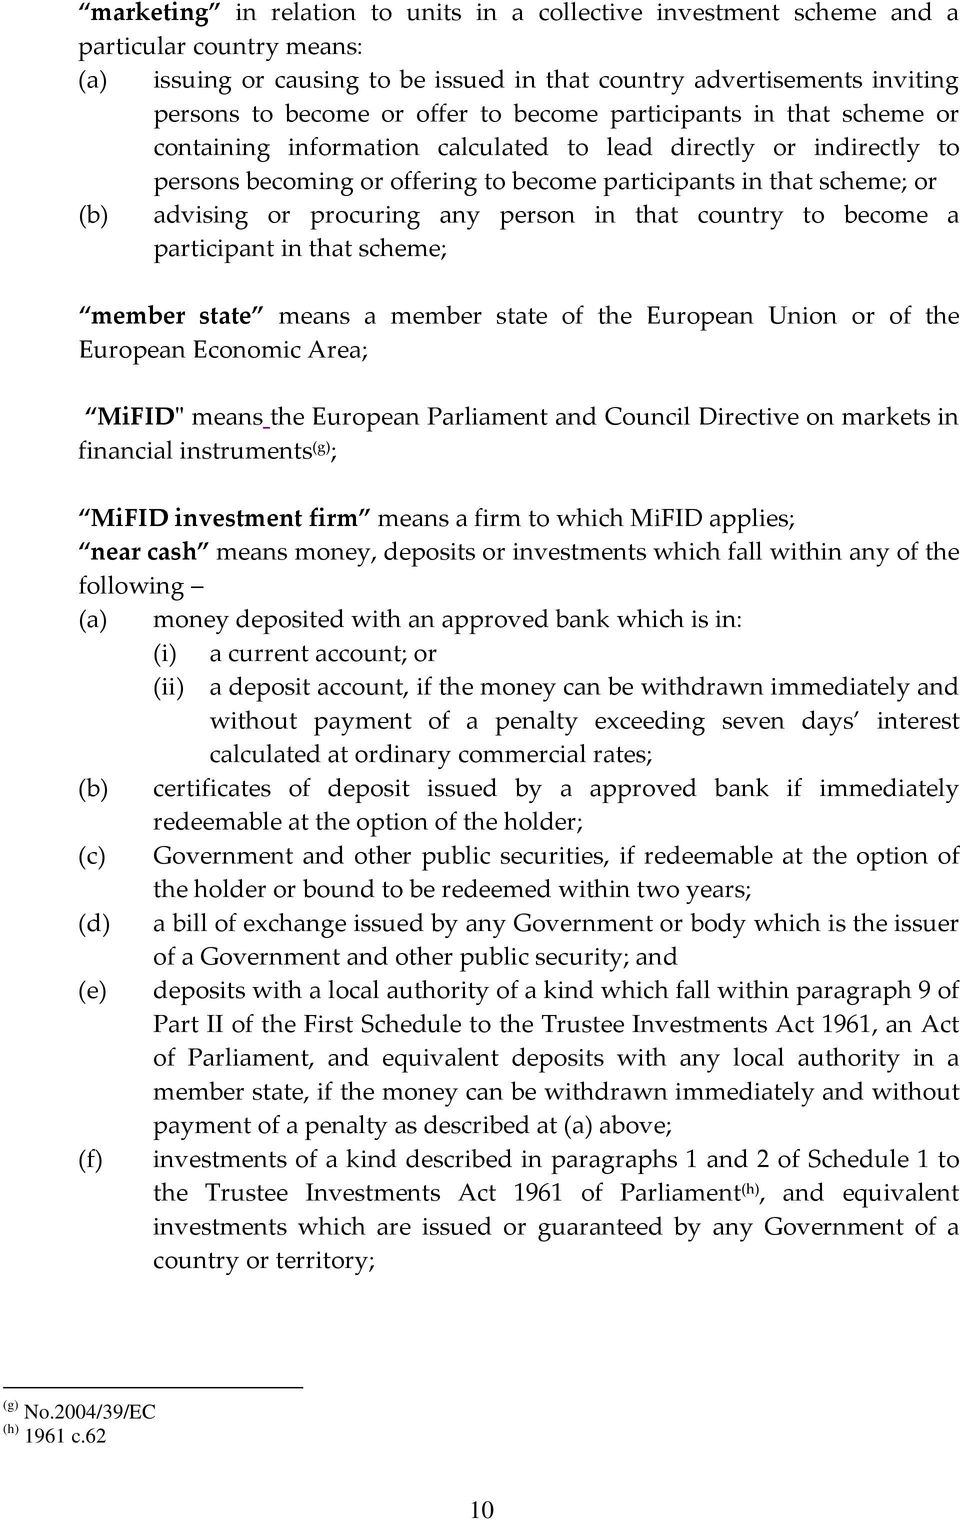 "procuring any person in that country to become a participant in that scheme; member state means a member state of the European Union or of the European Economic Area; MiFID"" means the European"